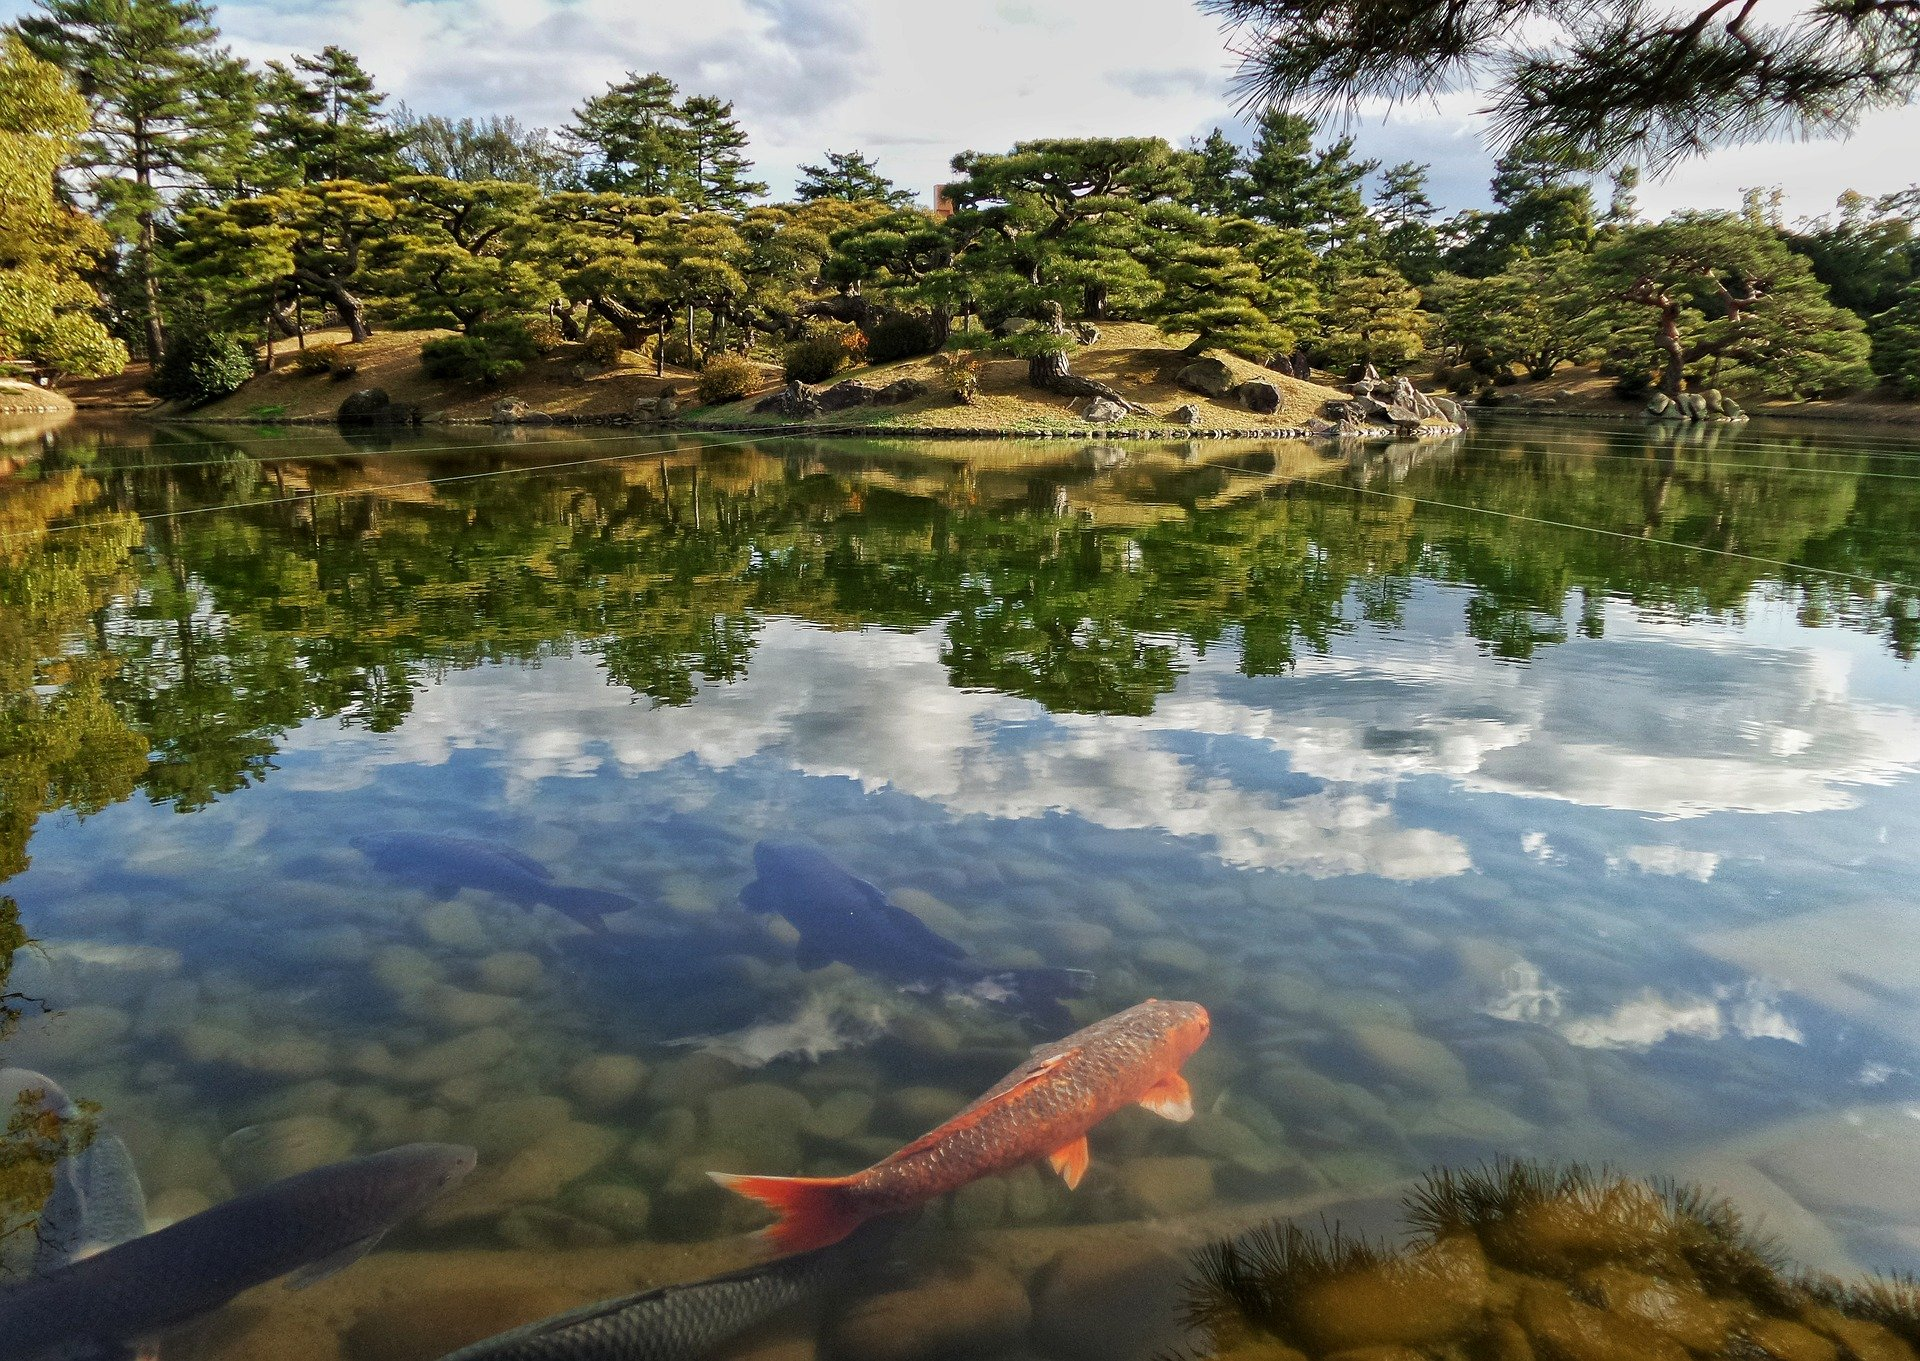 6-Day Nature Lovers Tour of Shikoku - Japan Itinerary